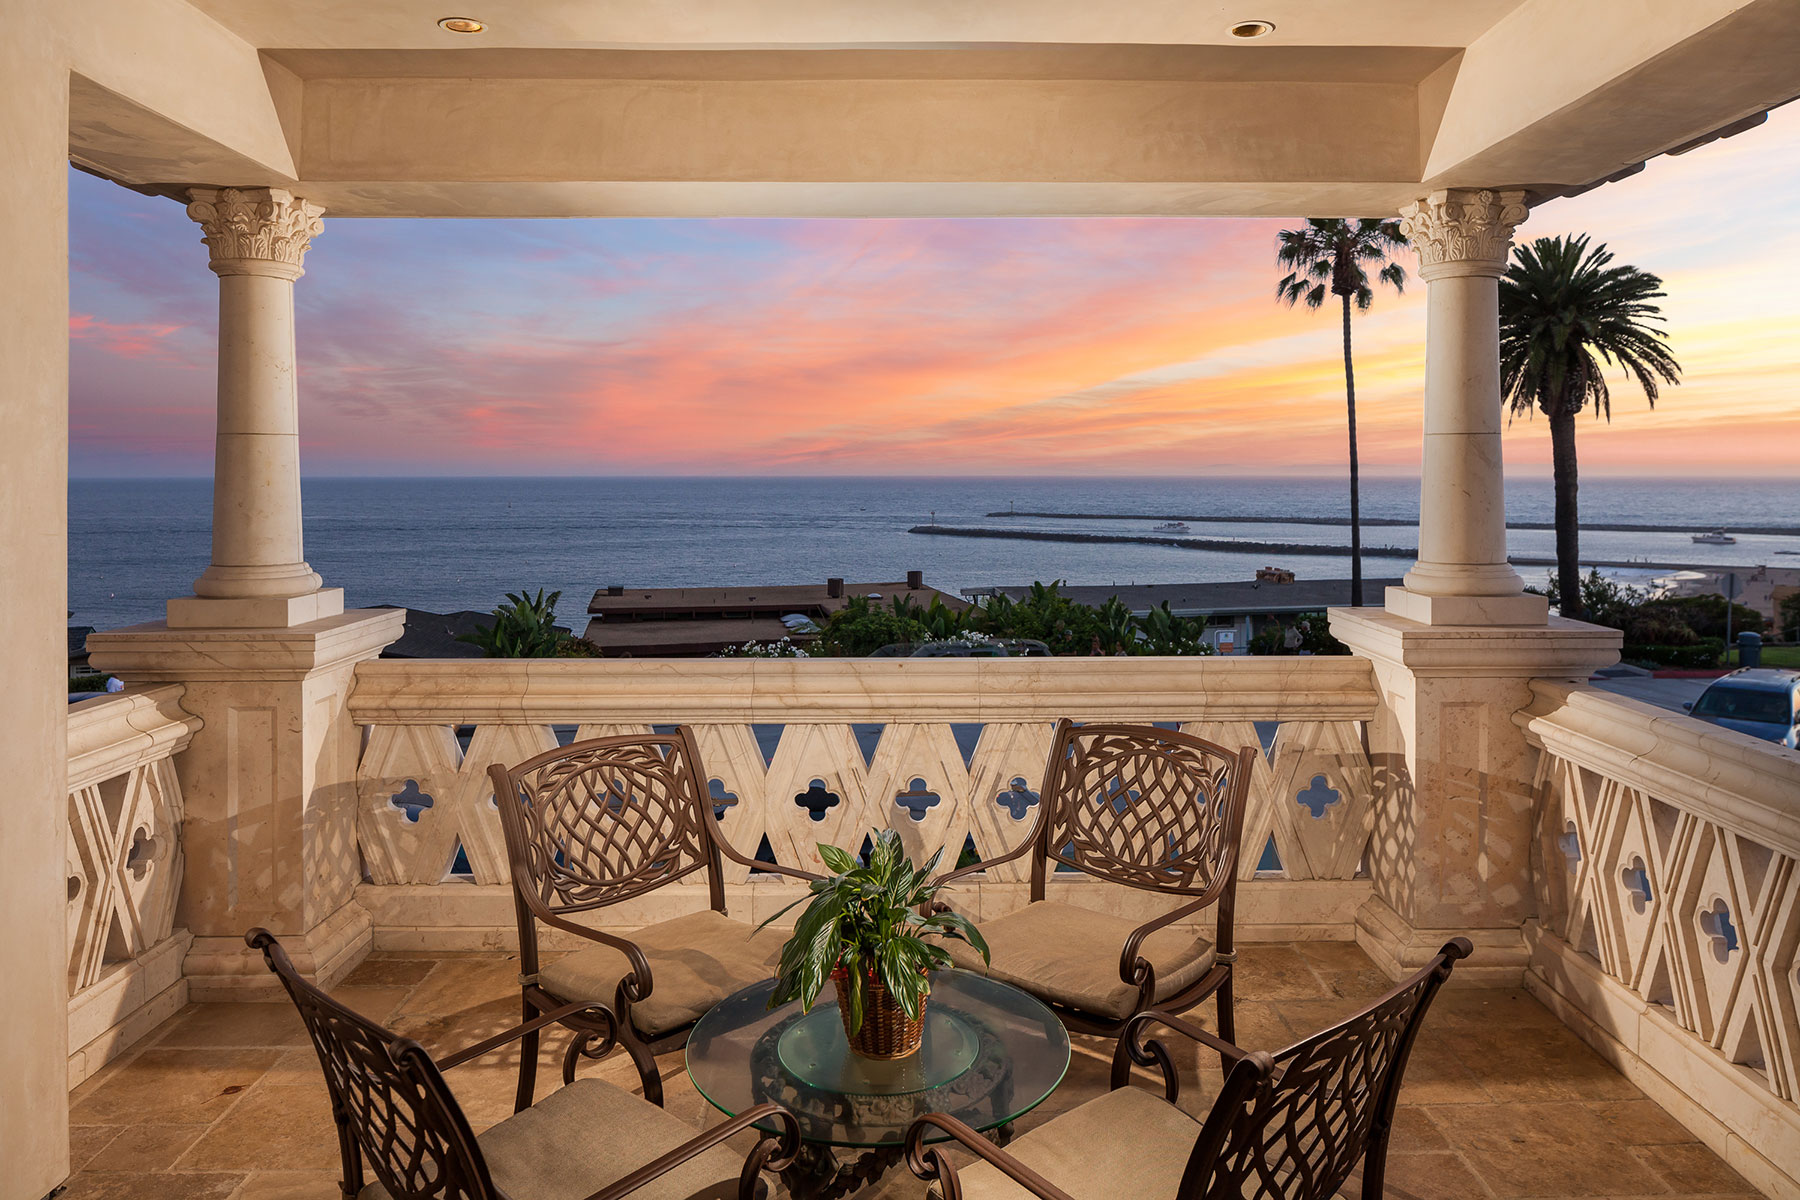 Single Family Home for Sale at 3300 Ocean Bvld Corona Del Mar, California, 92625 United States